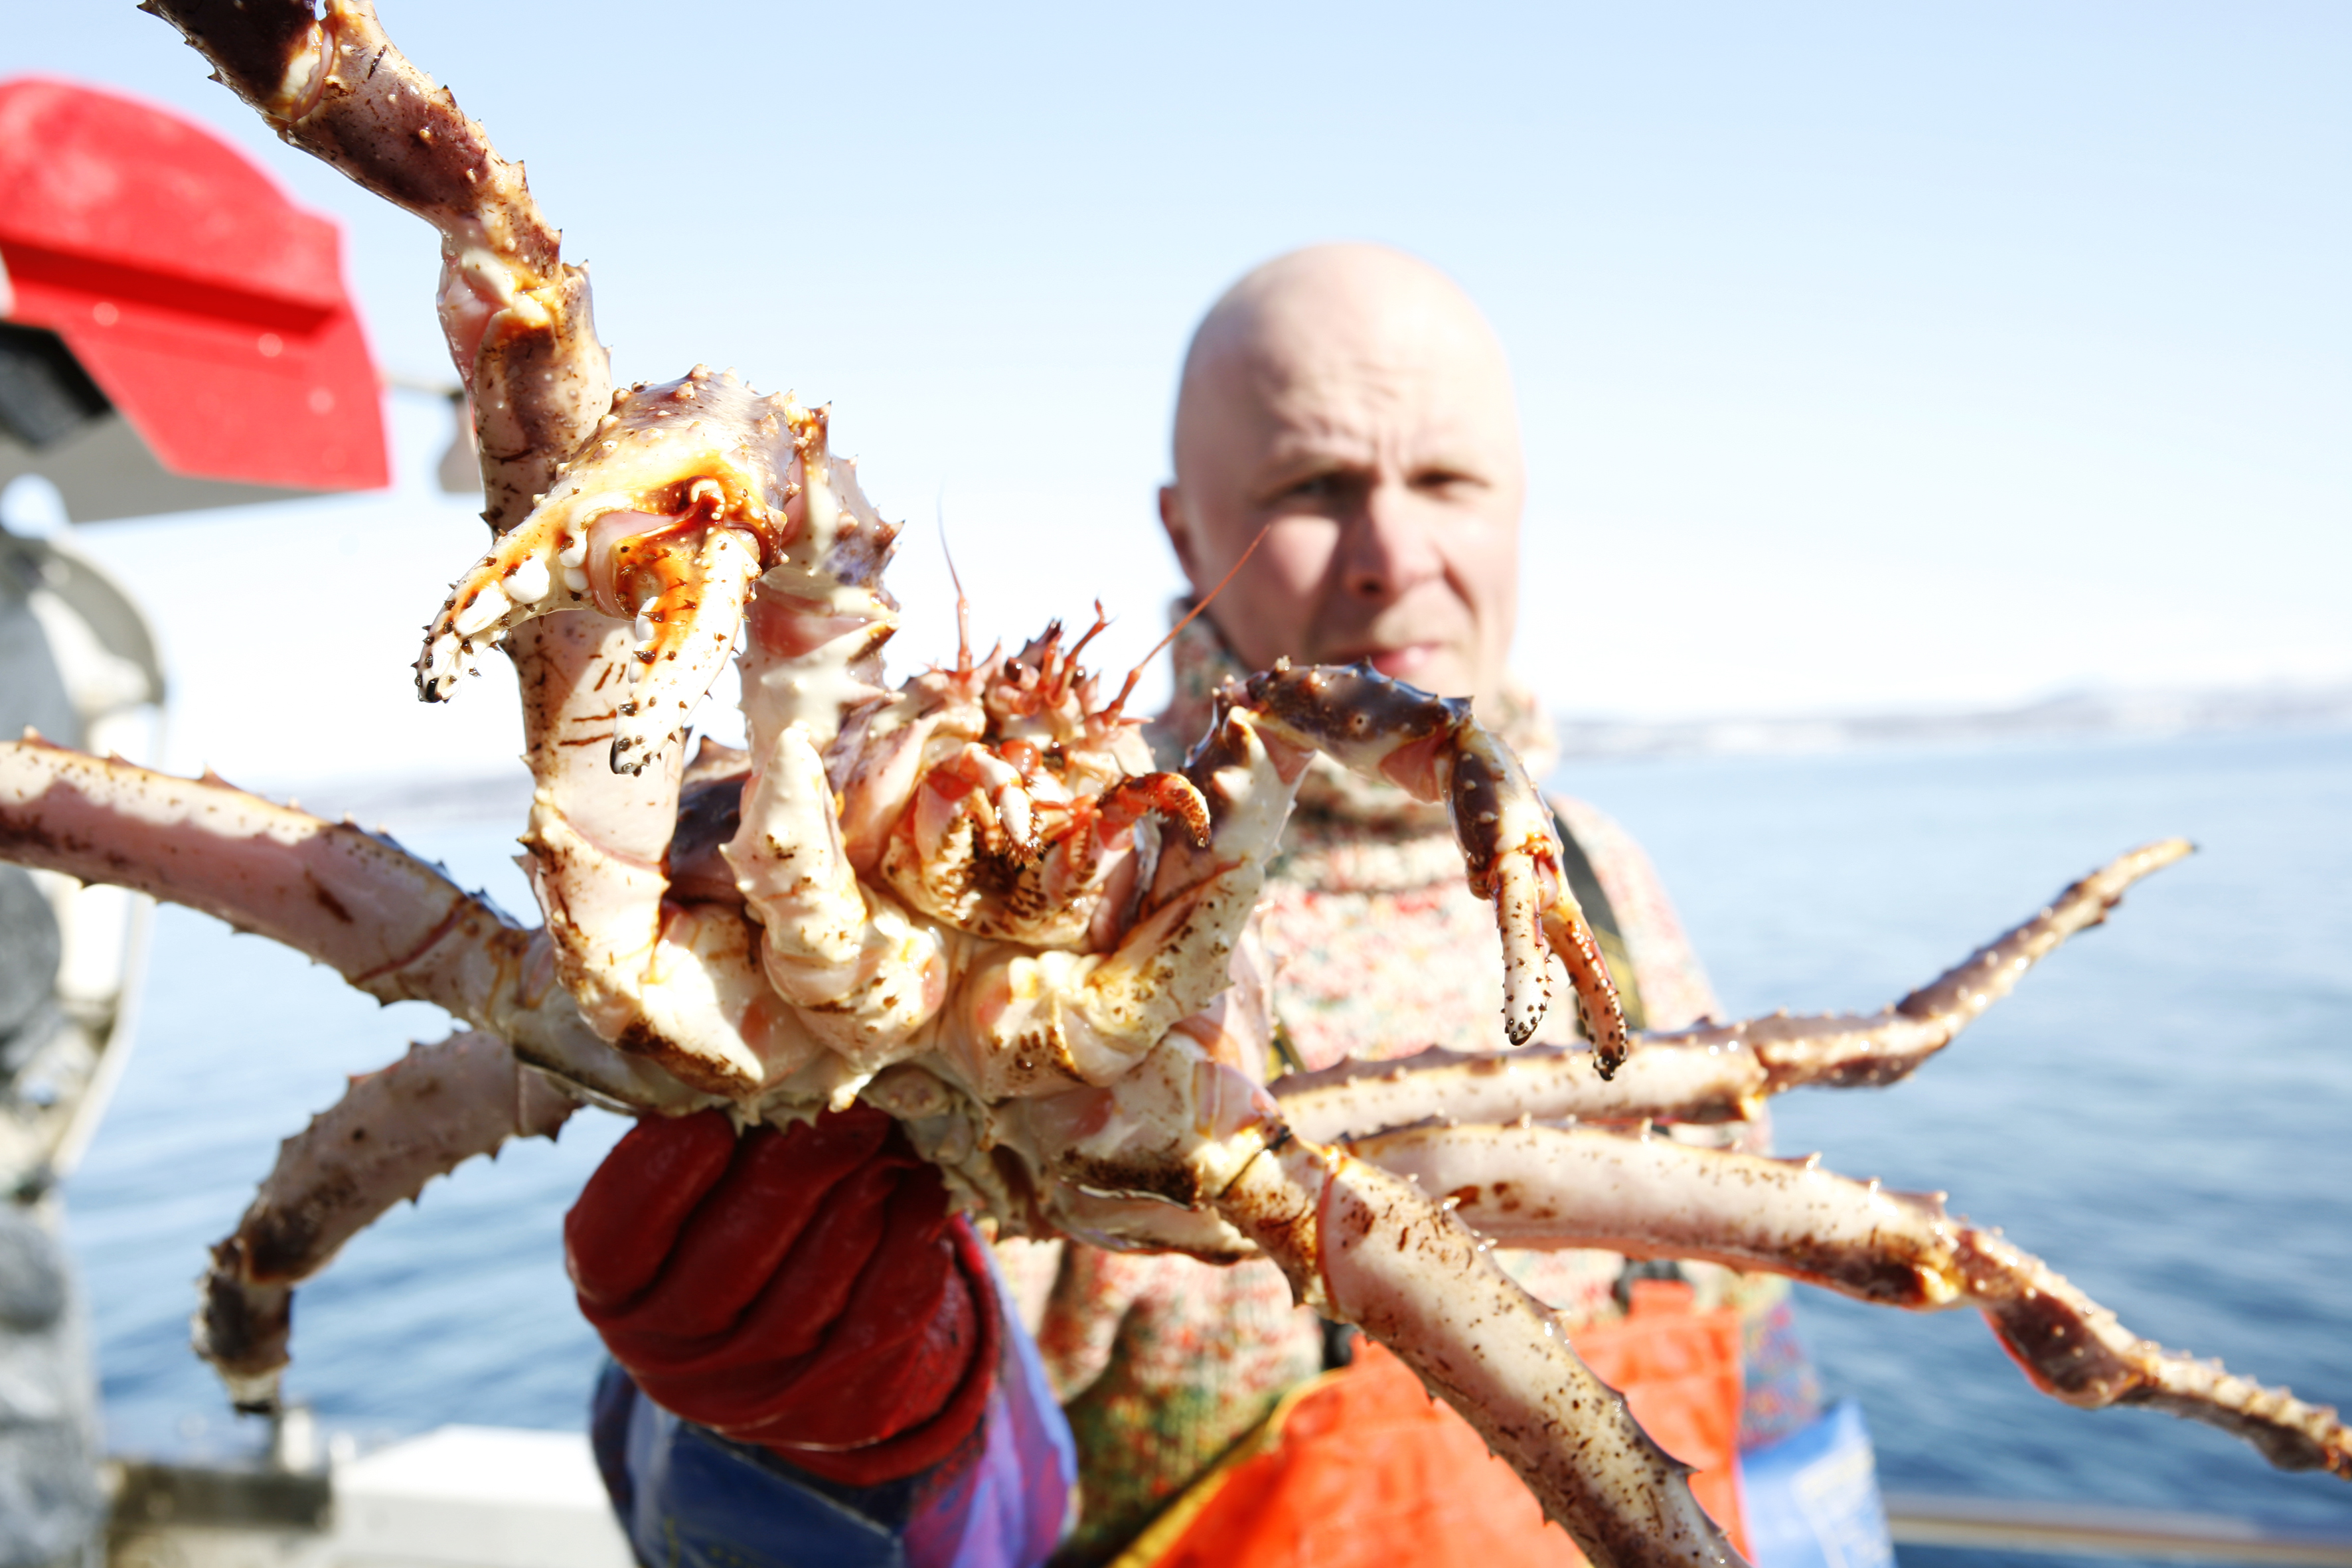 King Crab safarit